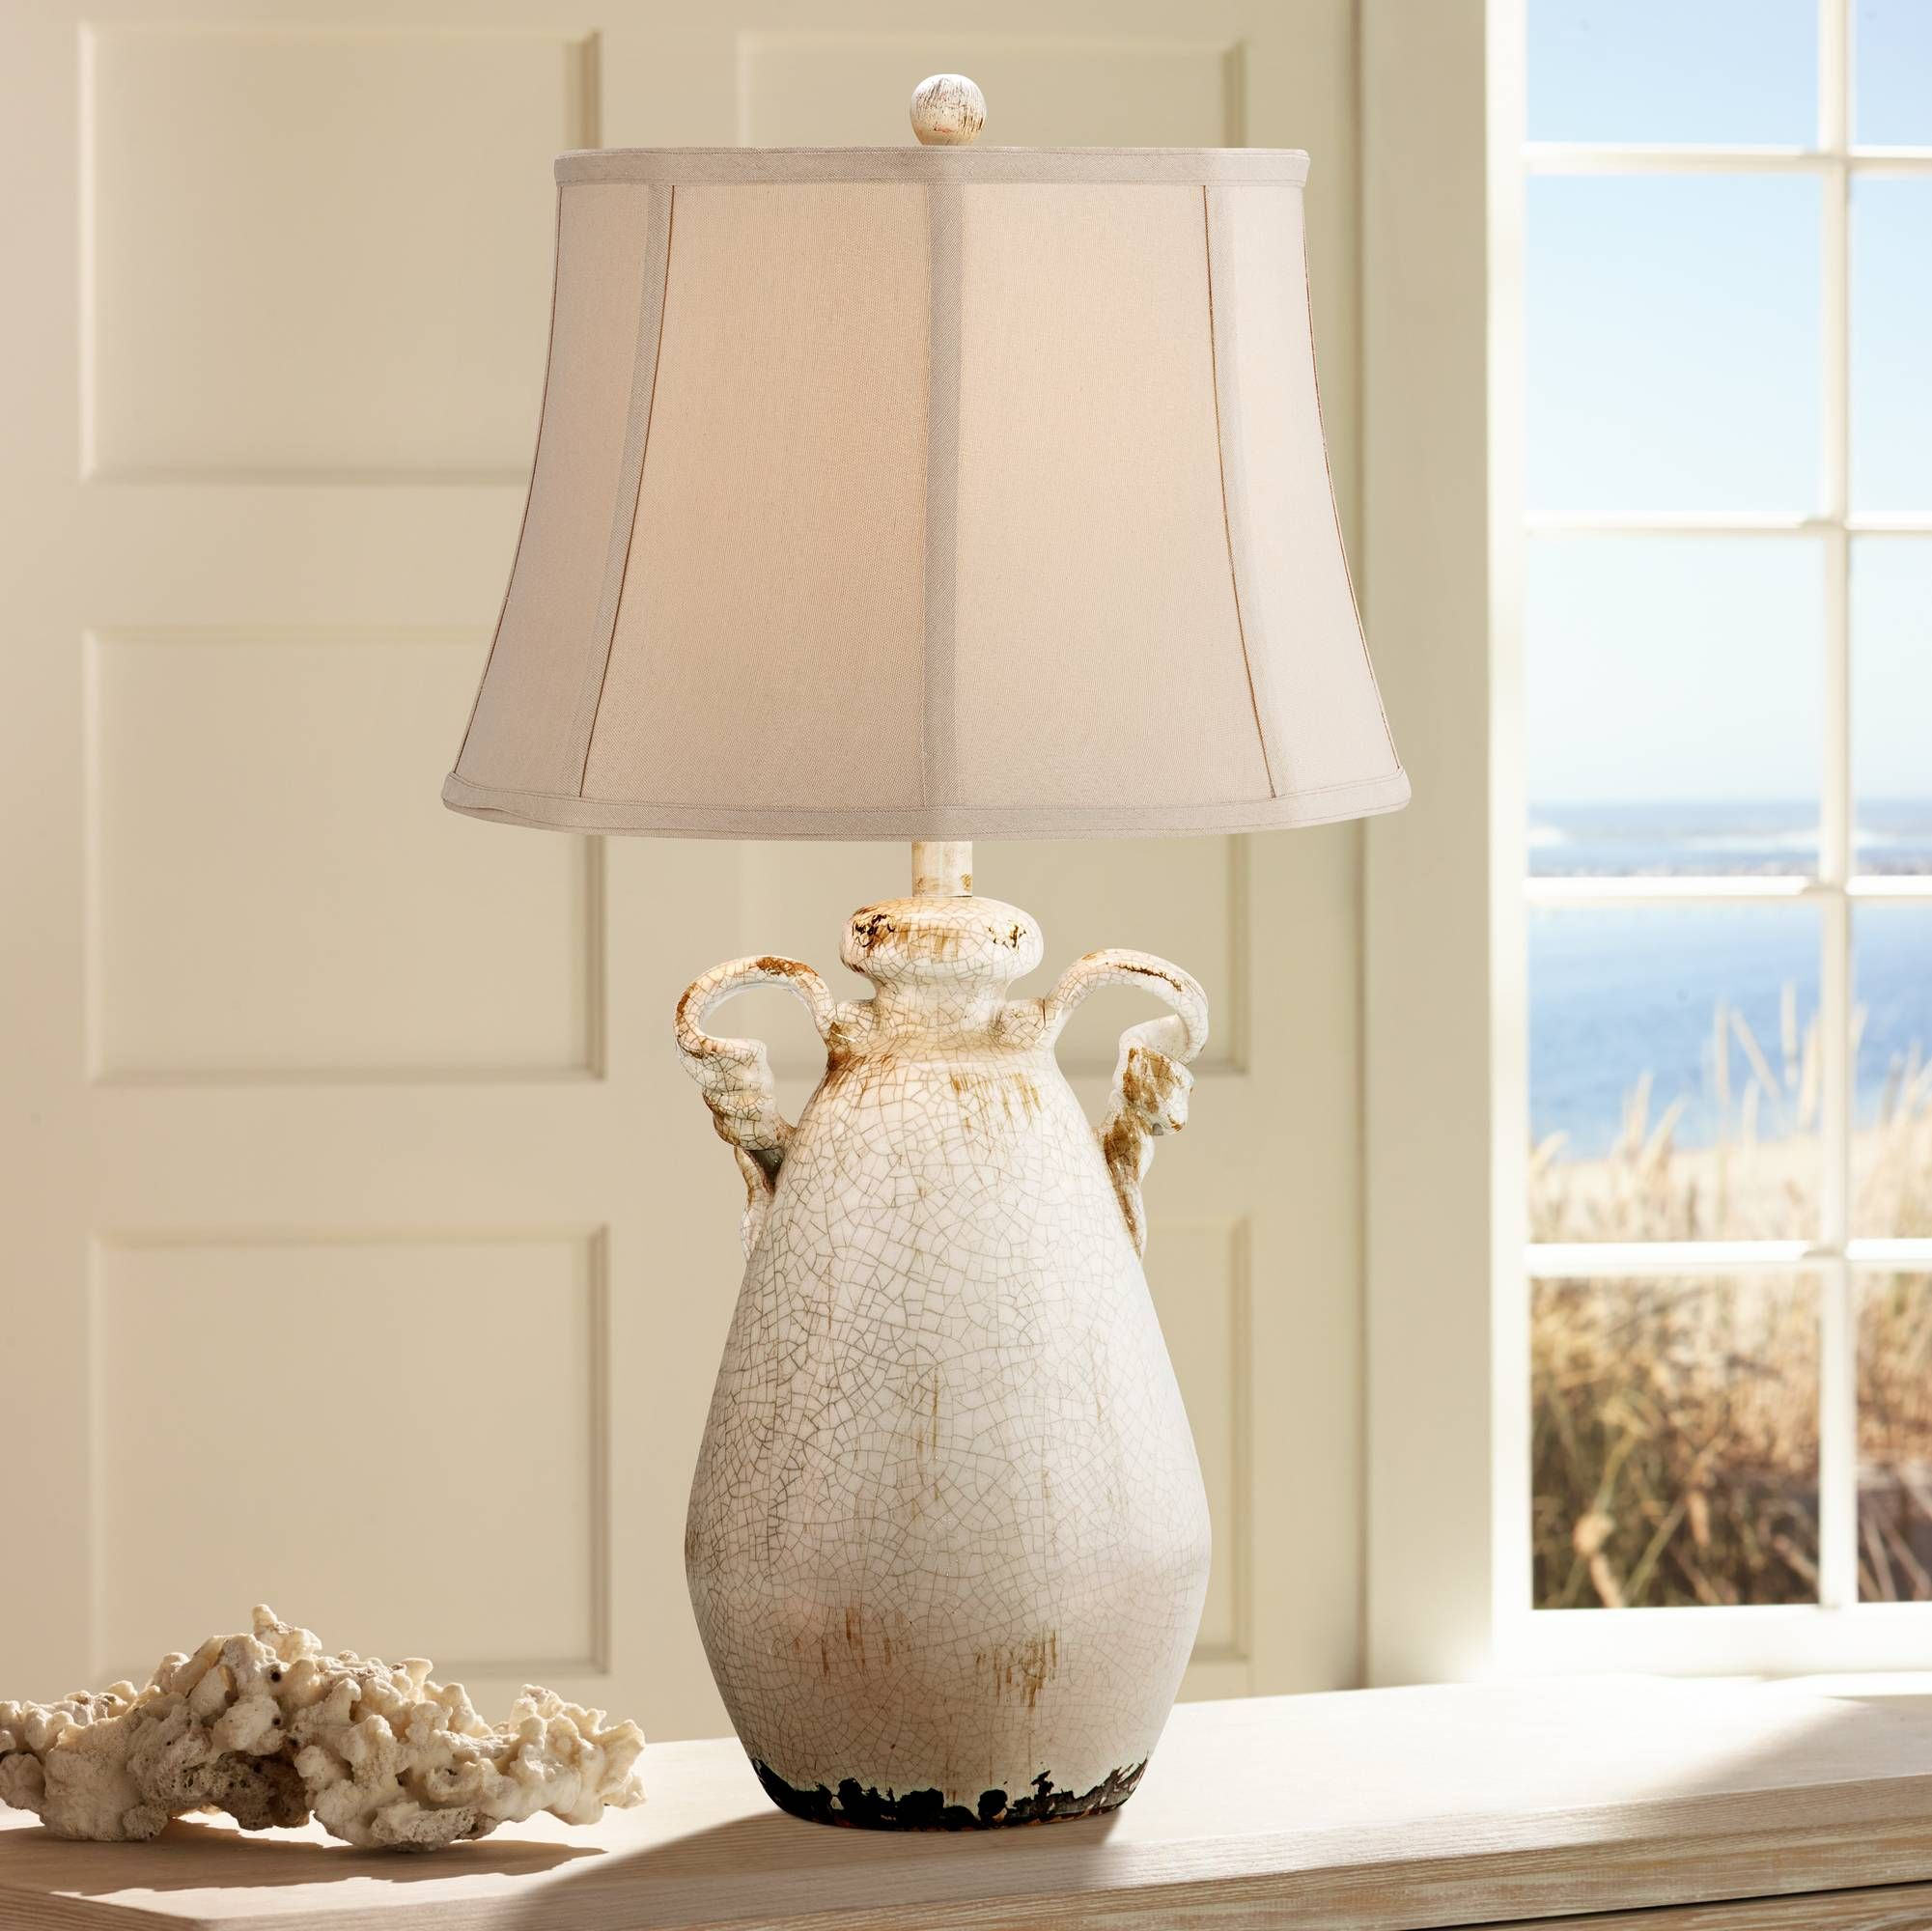 Isabella Ivory Ceramic Table Lamp By Regency Hill 2w497 Lamps